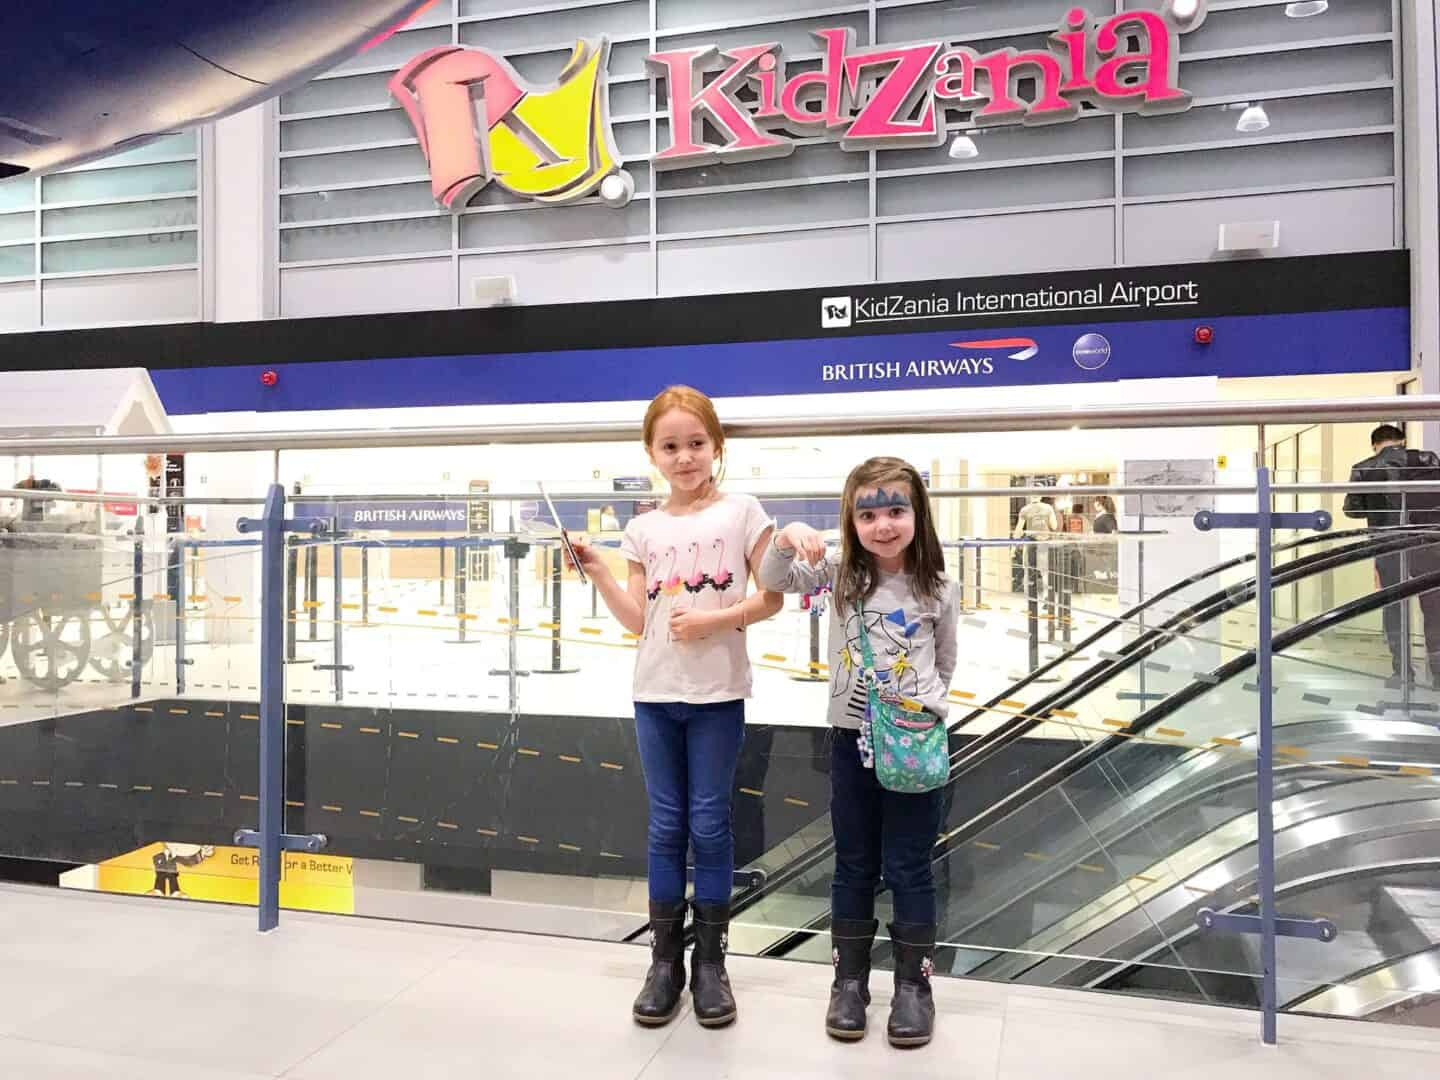 KidZania London review - is KidZania worth it?